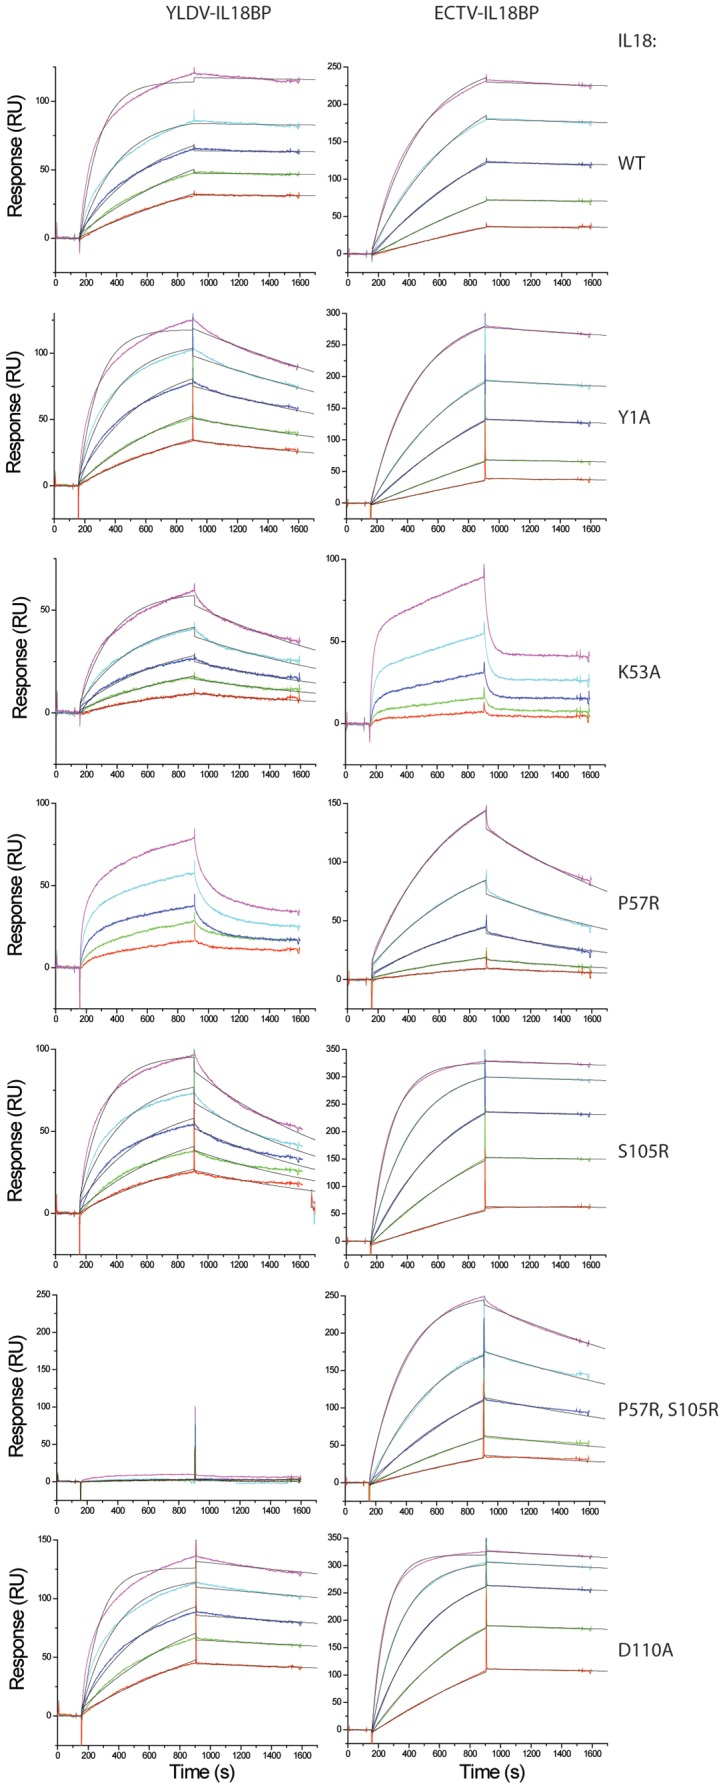 Kinetic analyses of the binding of IL18 with YLDV-IL18BP or ECTV-IL18BP. SPR analysis was performed as described in Figure 9 with IL18 at 5 different concentrations. The binding curves were globally fitted with BiaEvaluation software to a 1∶1 binding model. The colored and black lines are the actual responses in RU and globally fitted curves, respectively.